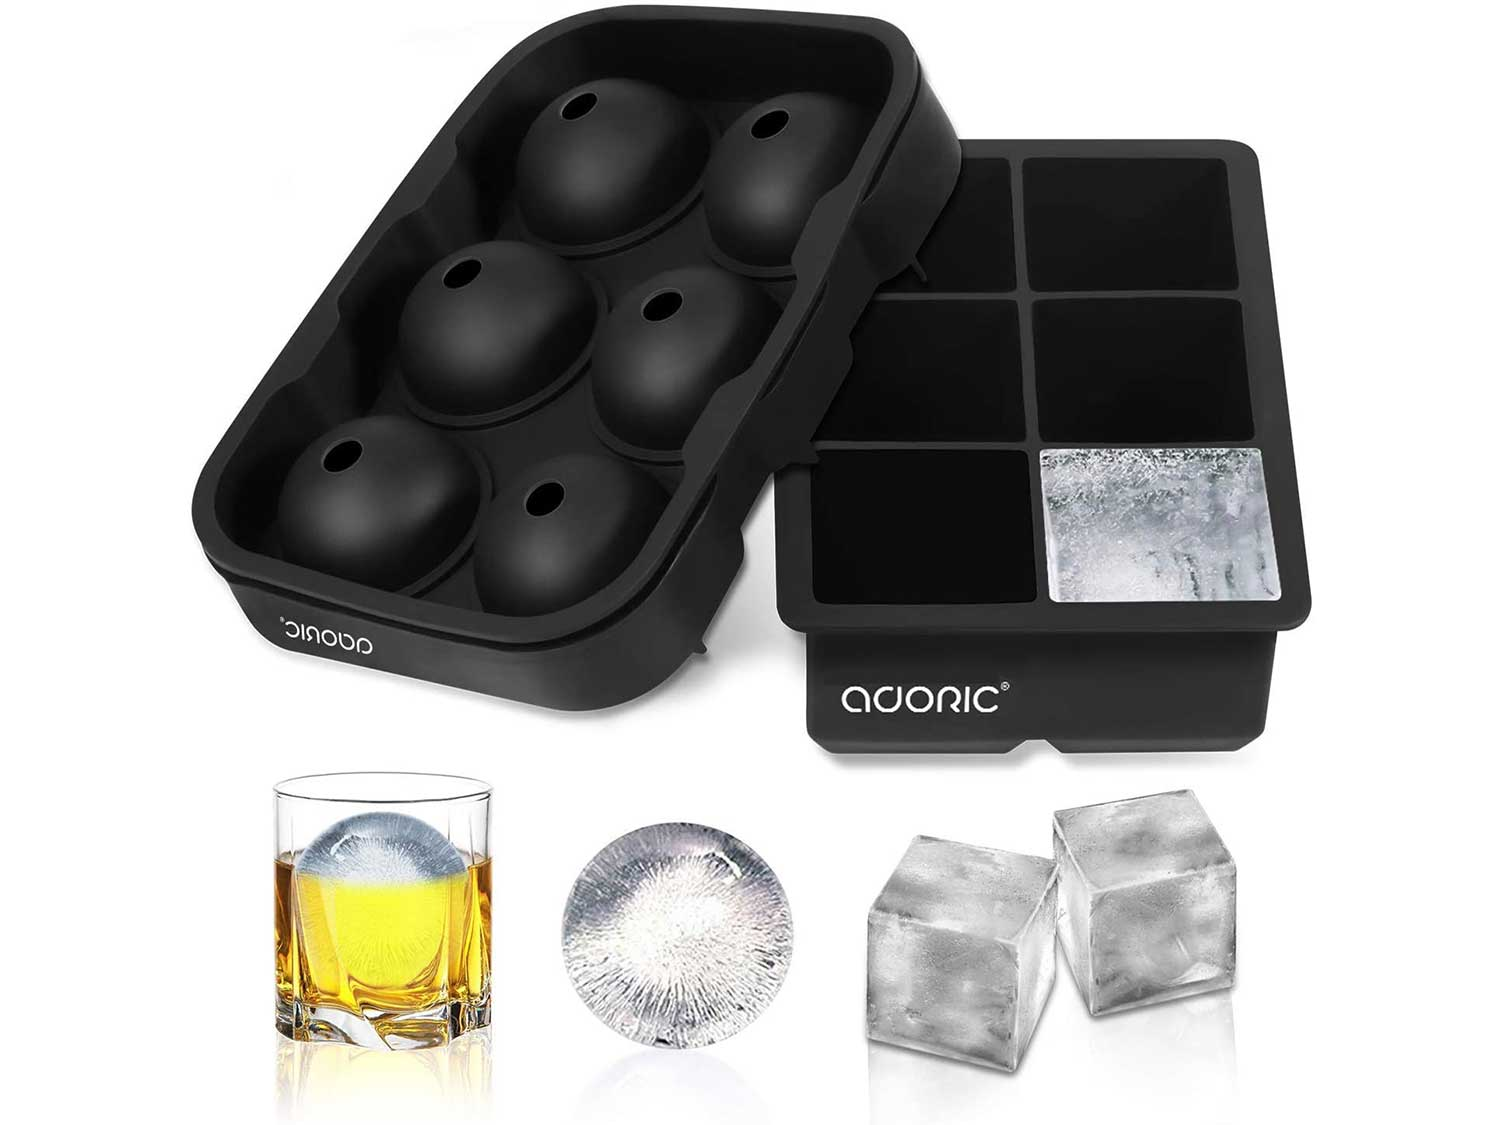 Adoric Ice Cube Trays Silicone Set of 2, Sphere Ice Ball Maker with Lid and Large Square Ice Cube Molds for Whiskey, Reusable and BPA Free (Ice Cube Trays Silicone Set of 2)